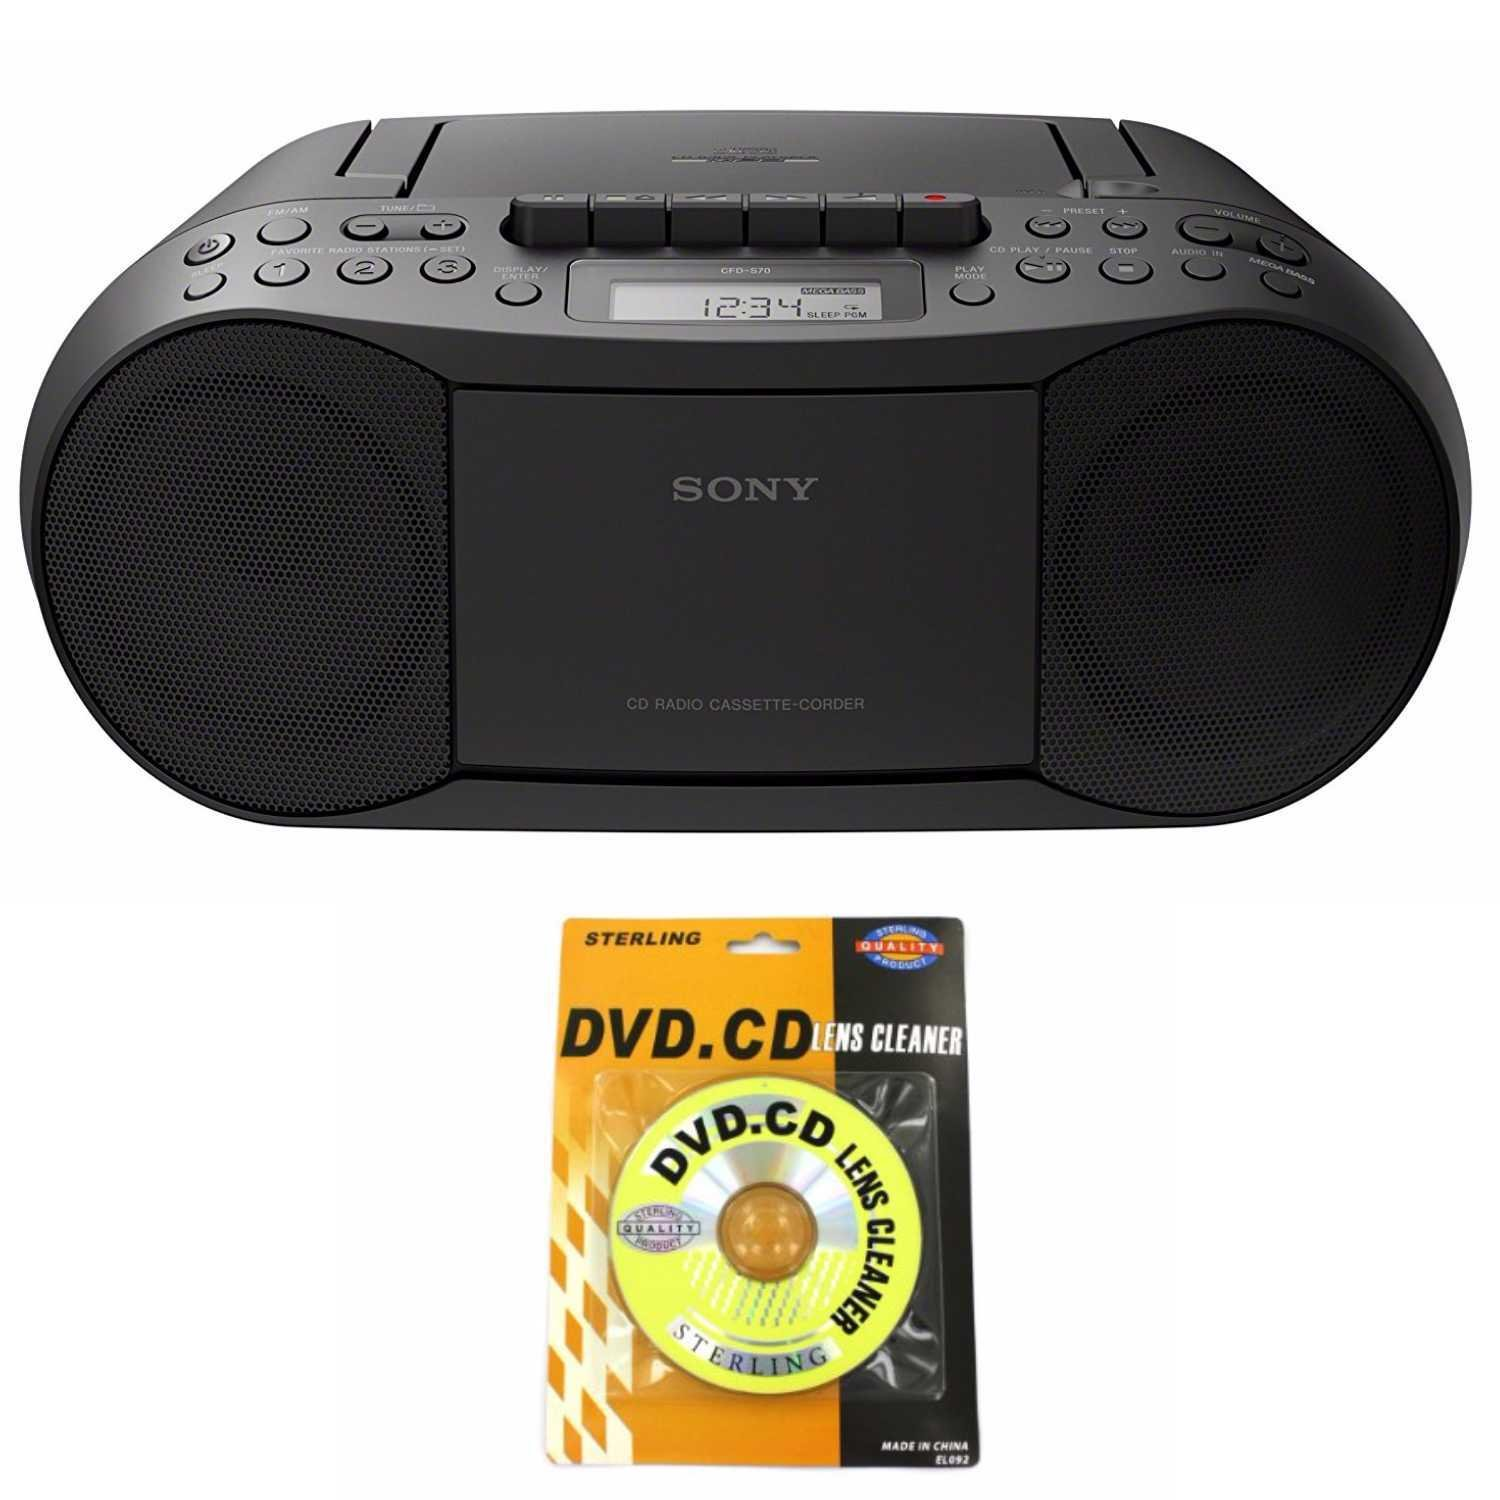 Sony Portable Full Range Stereo Boombox Sound System with MP3 CD Player, AM/FM Radio, 30 Presets, Headphone and AUX Jack - Bonus DB Sonic CD Head Cleaner by Sony